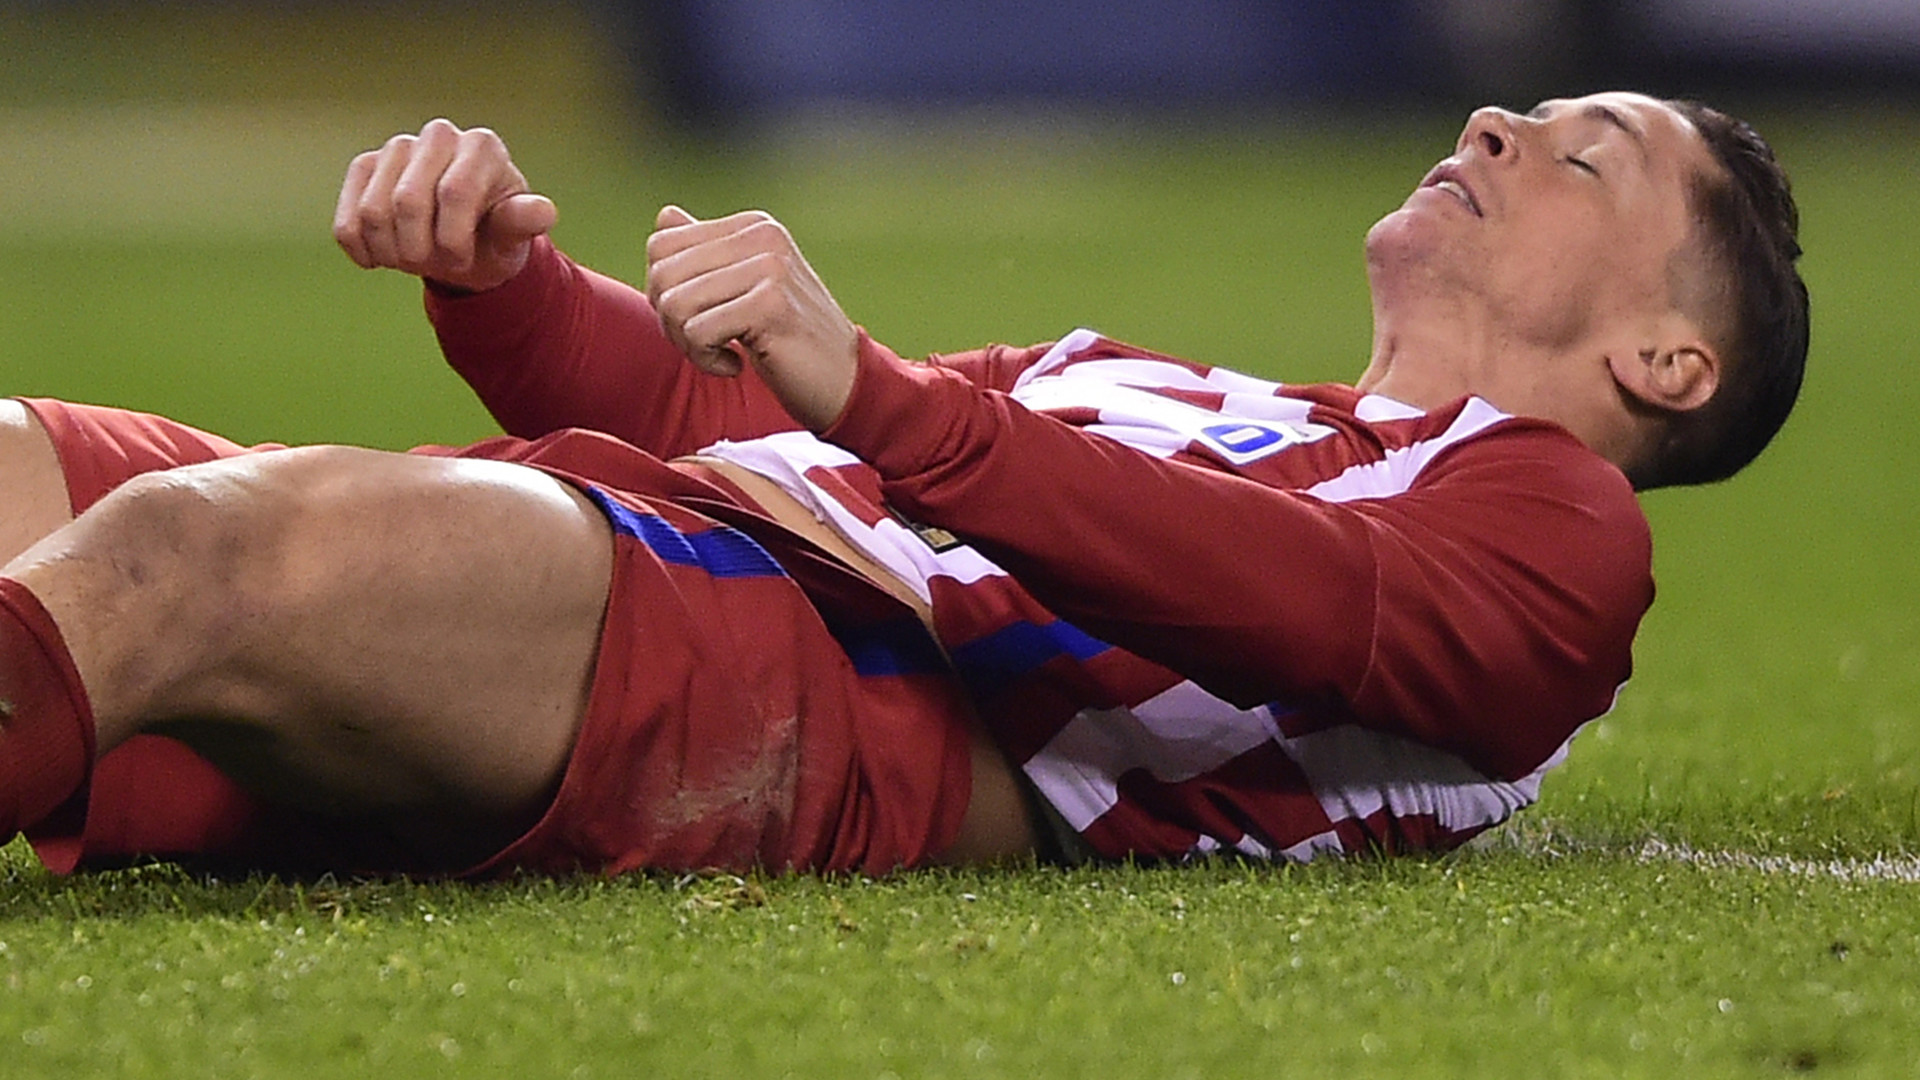 Fernando Torres scores twice in his final game for boyhood club Atletico Madrid in the draw with Eibar